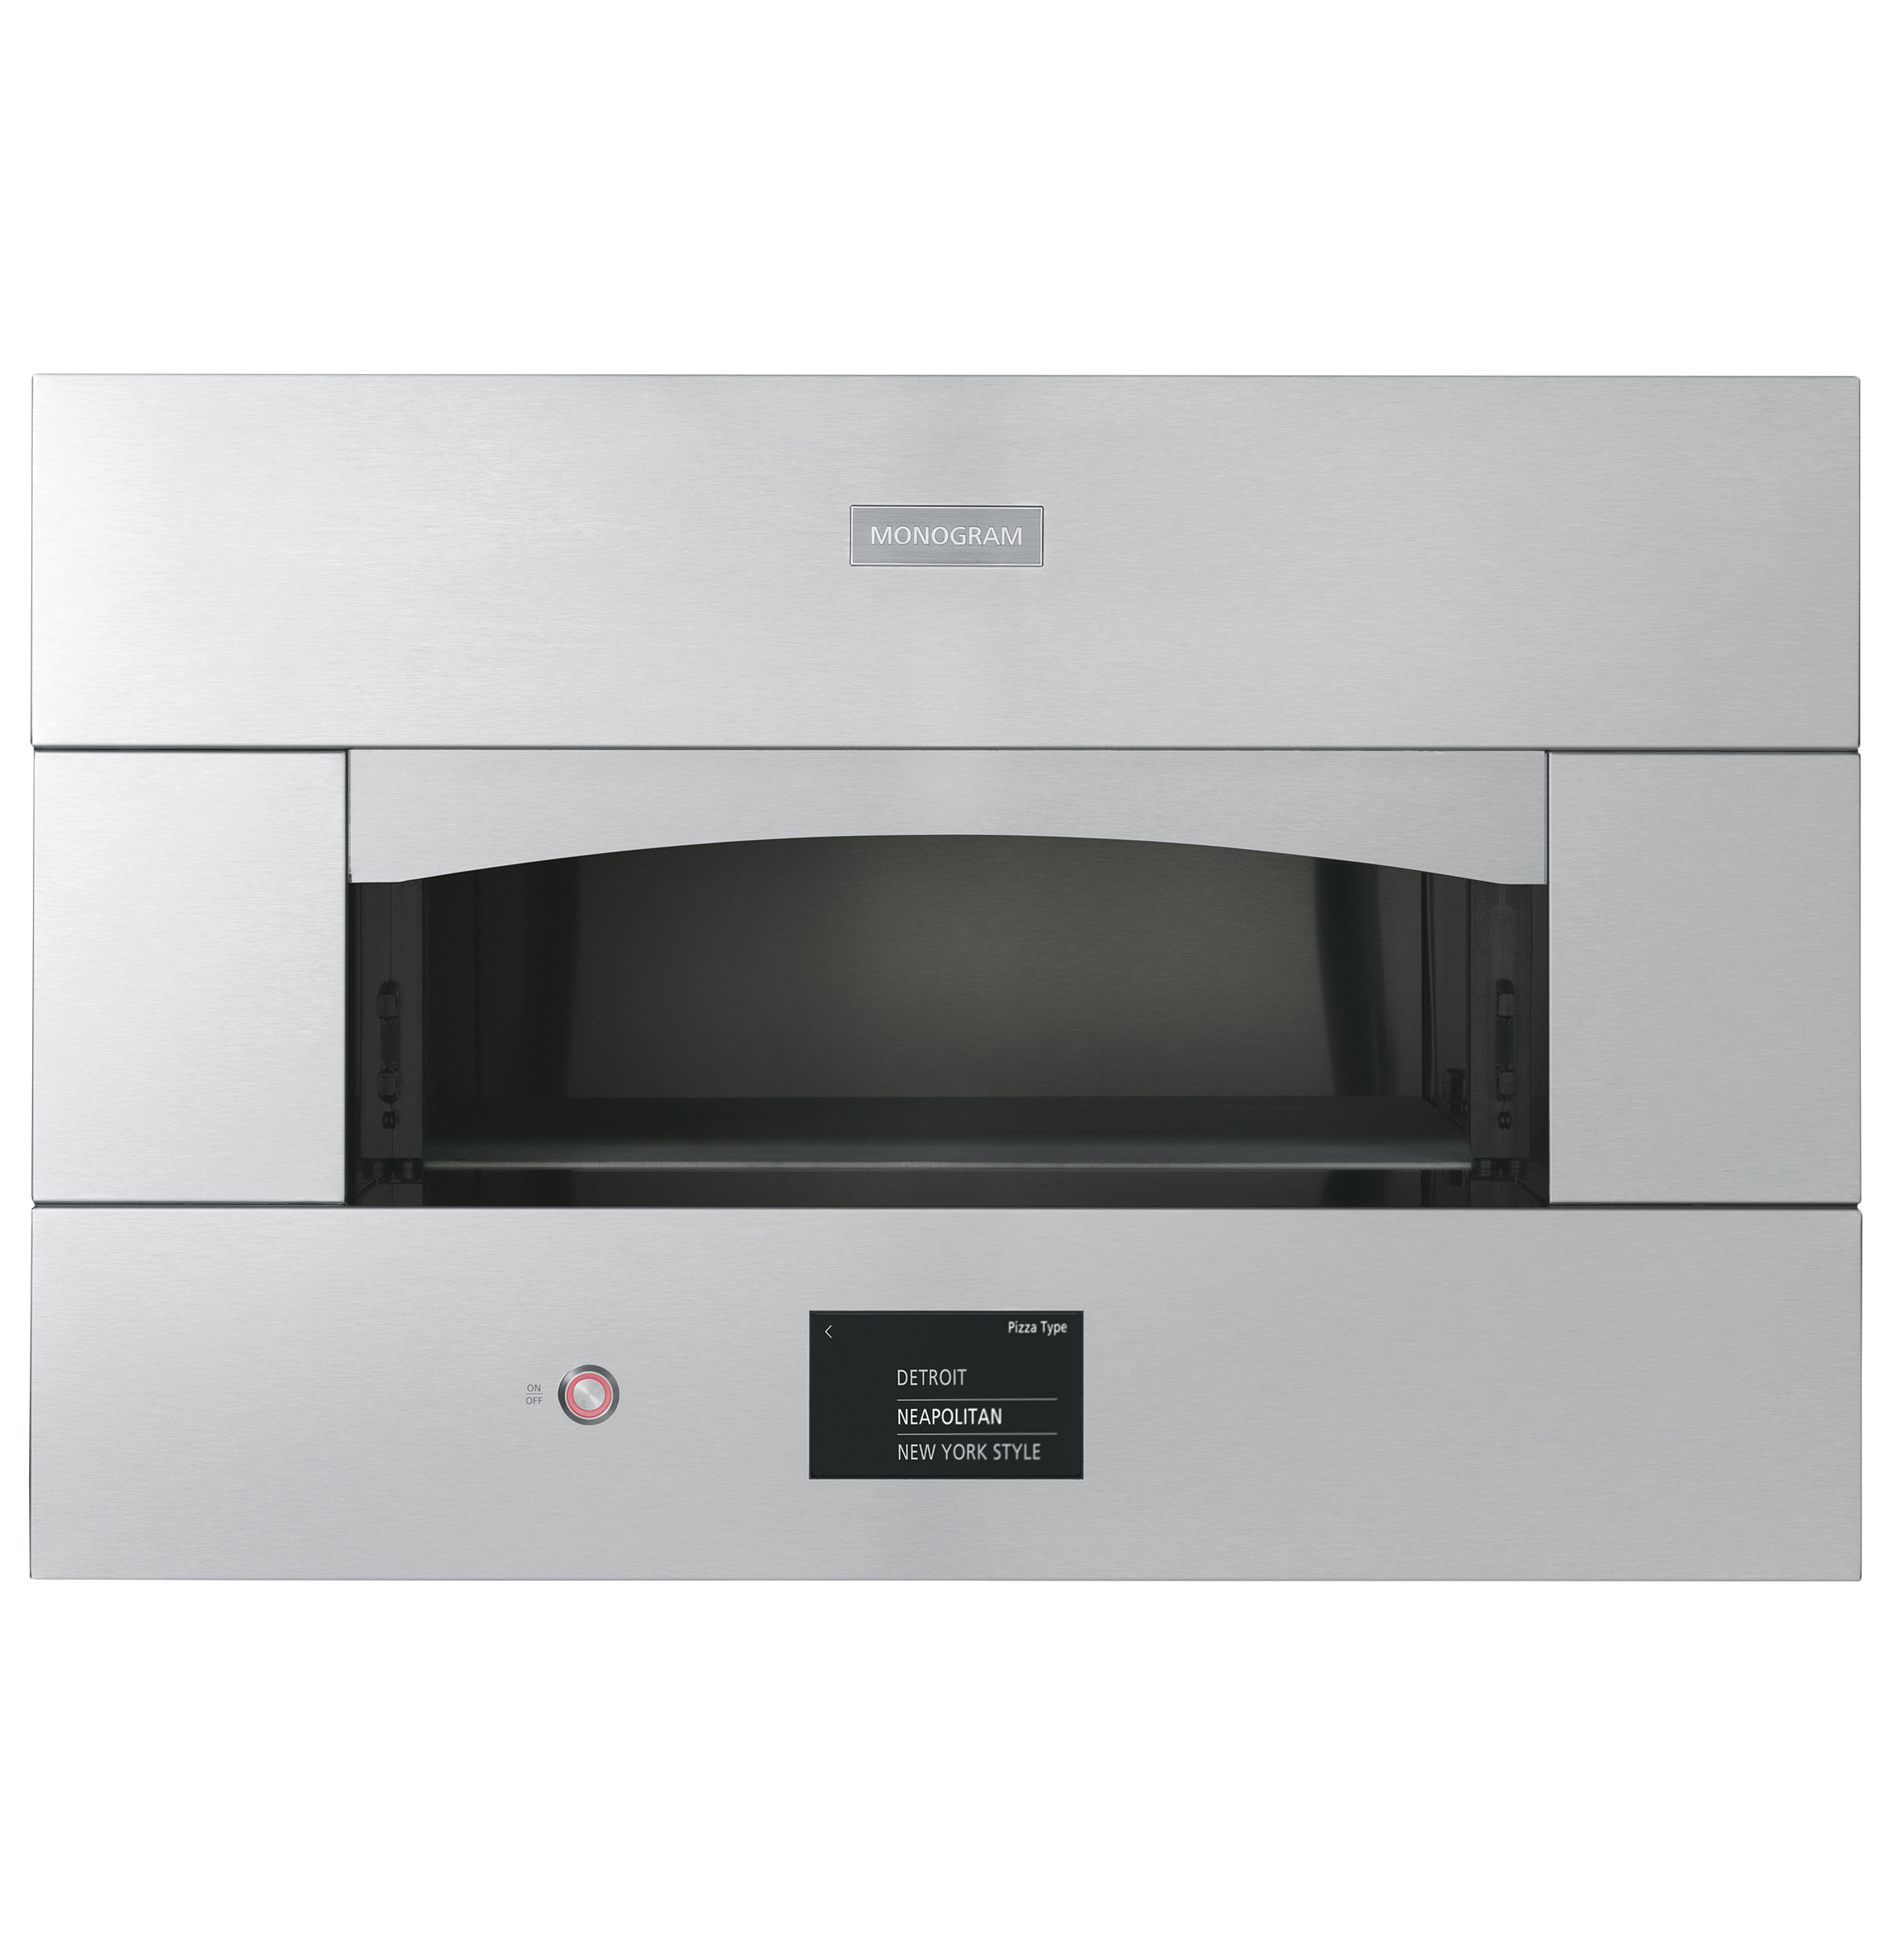 "Monogram Monogram 30"" Hearth Oven"